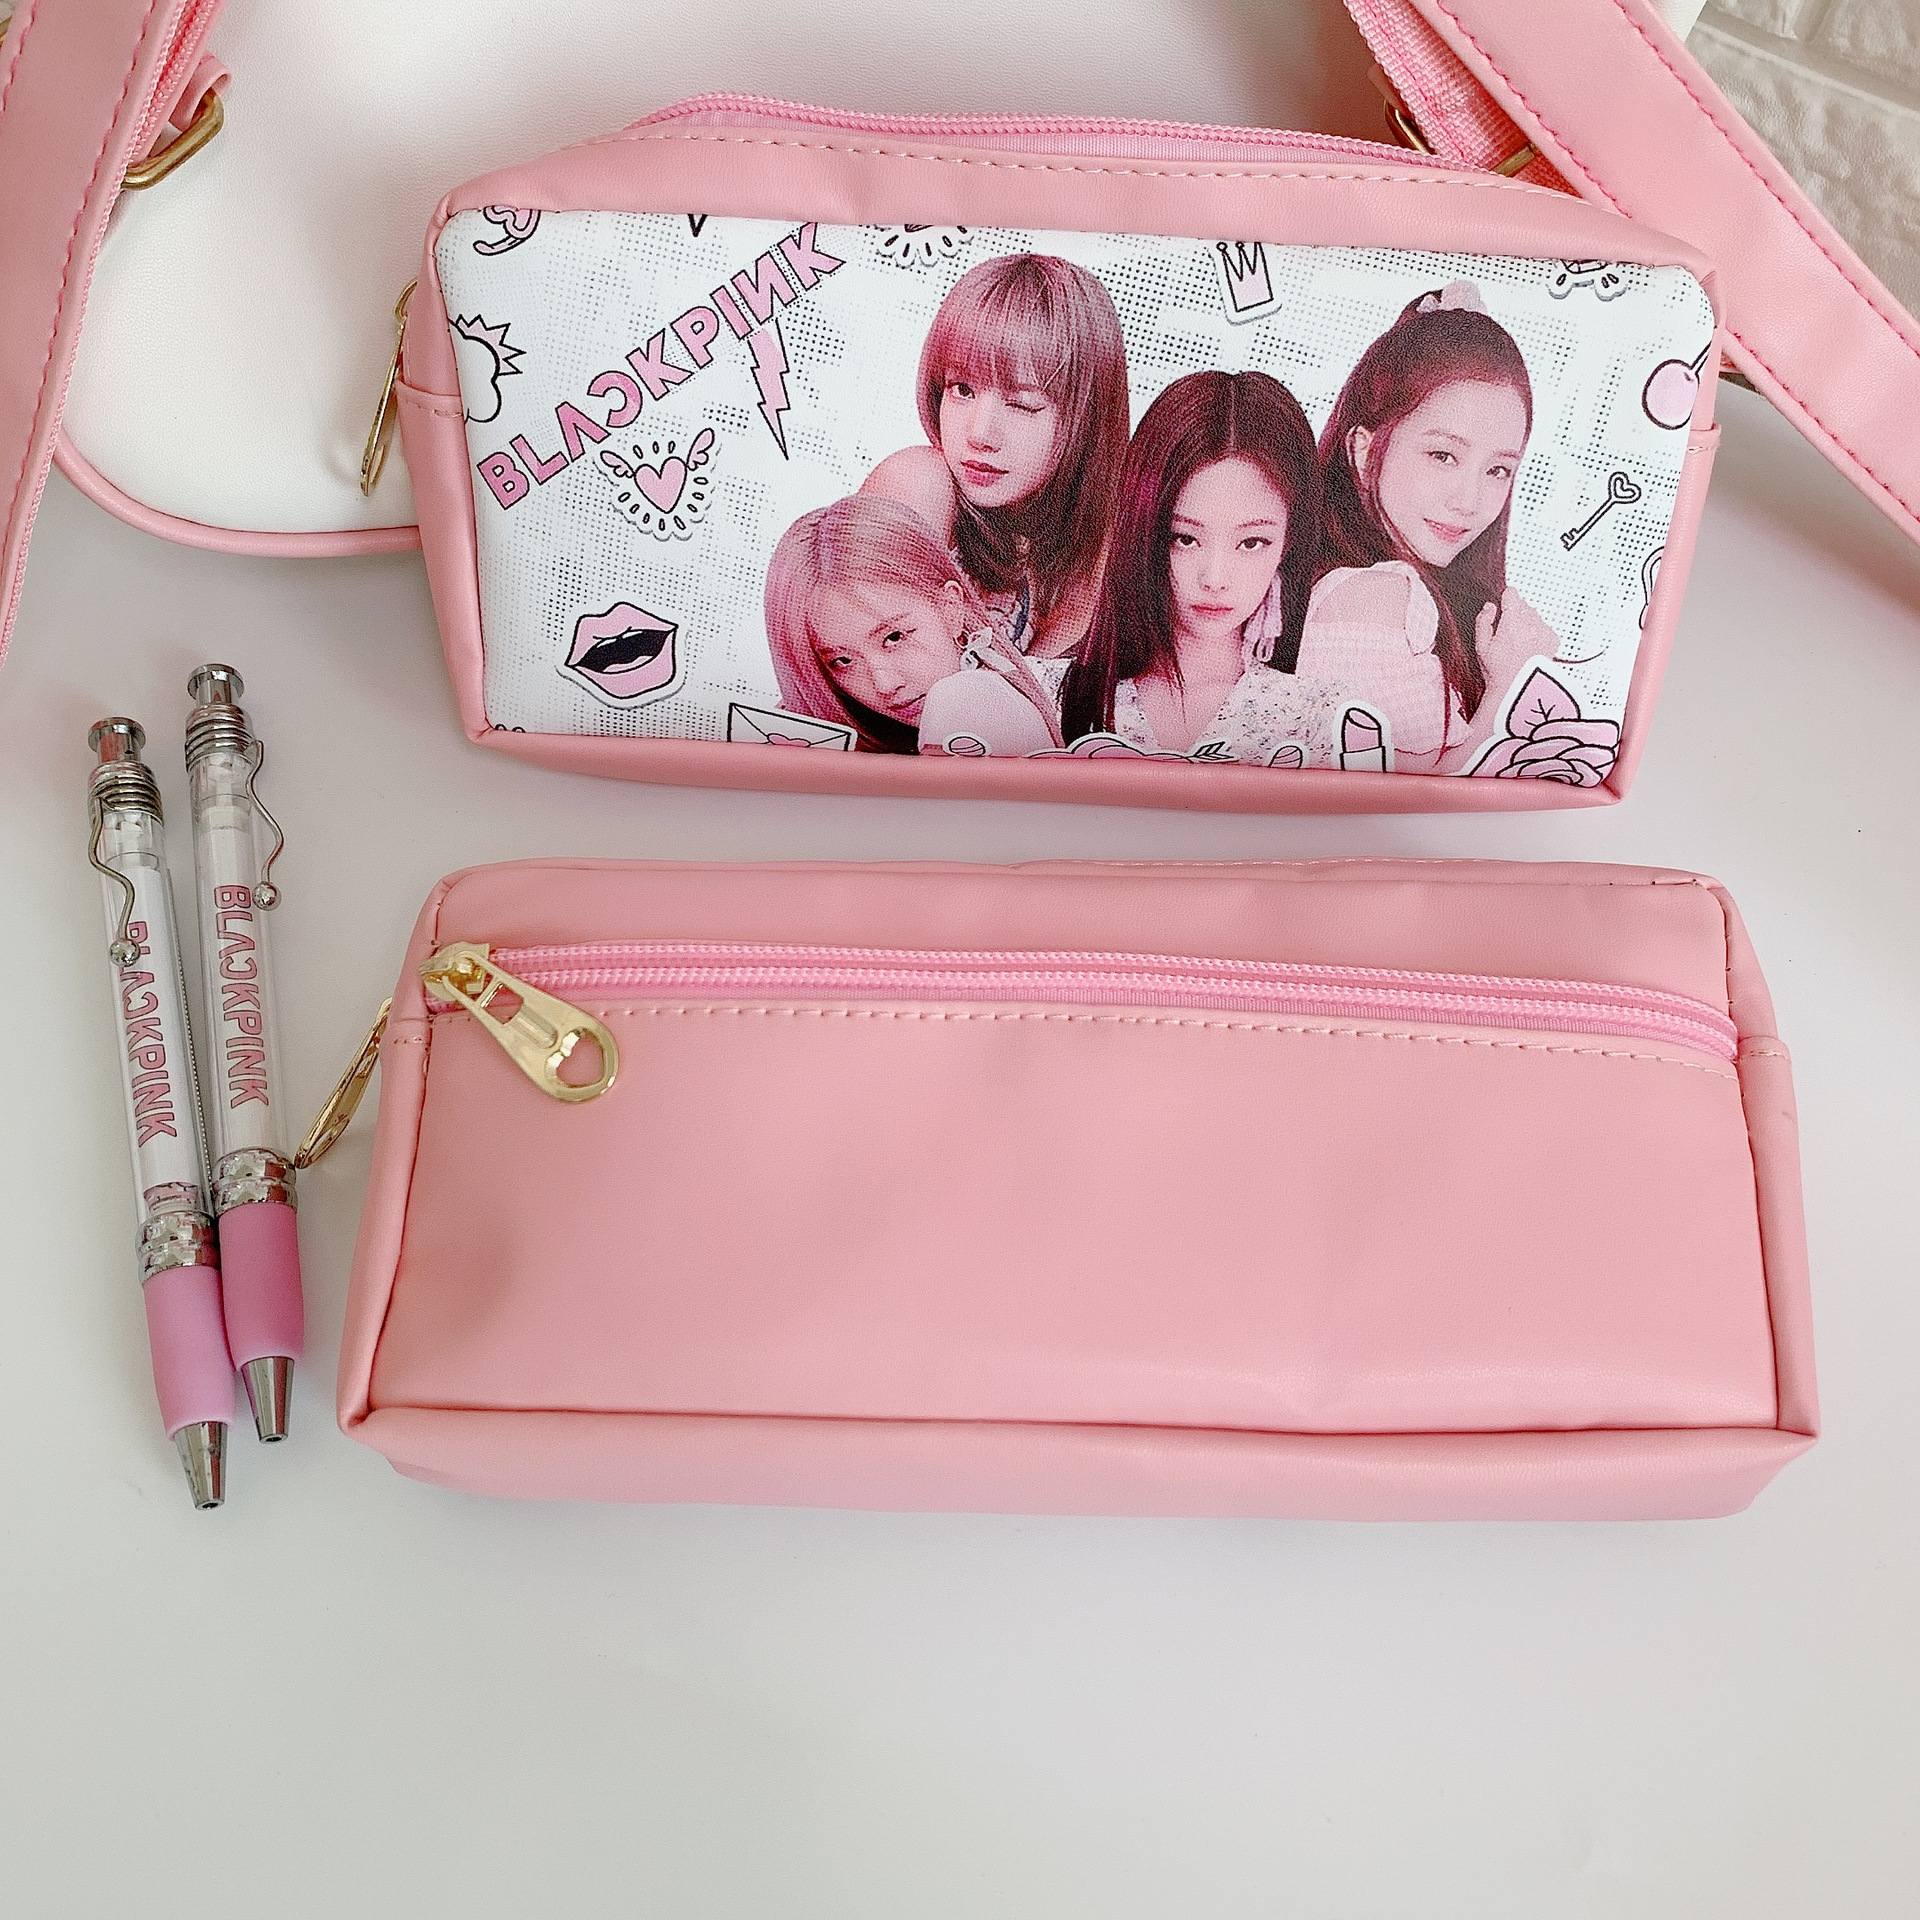 Creative Kpop Blackpink Pencil Case Bag Pu Pen Bag Stationery Box Large Capacity Students Stationery Bags Blackpink Pencilcase